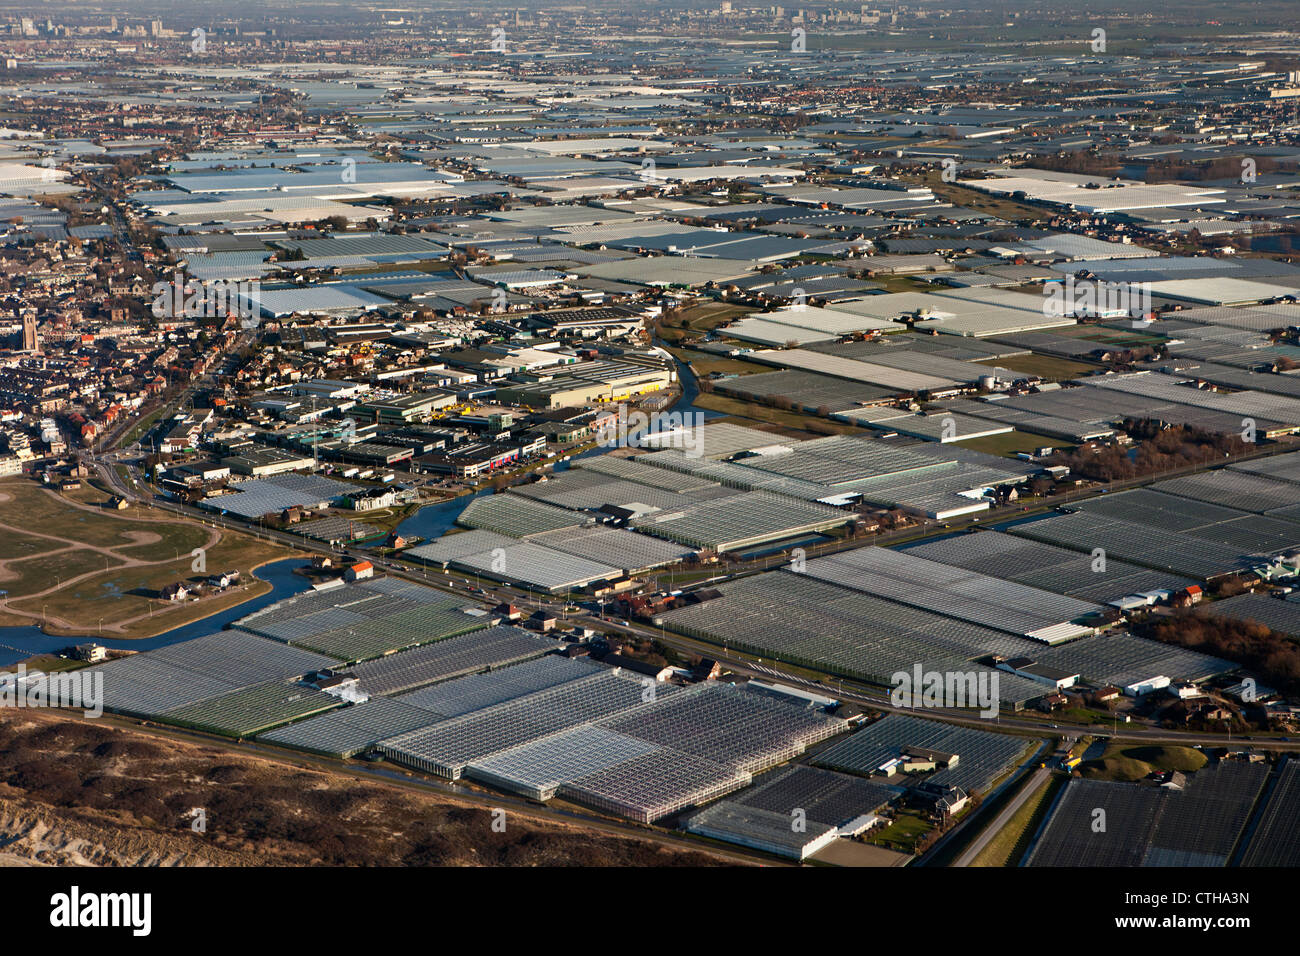 The Netherlands, Monster, Westland region. Horticulture in greenhouses. Aerial. - Stock Image